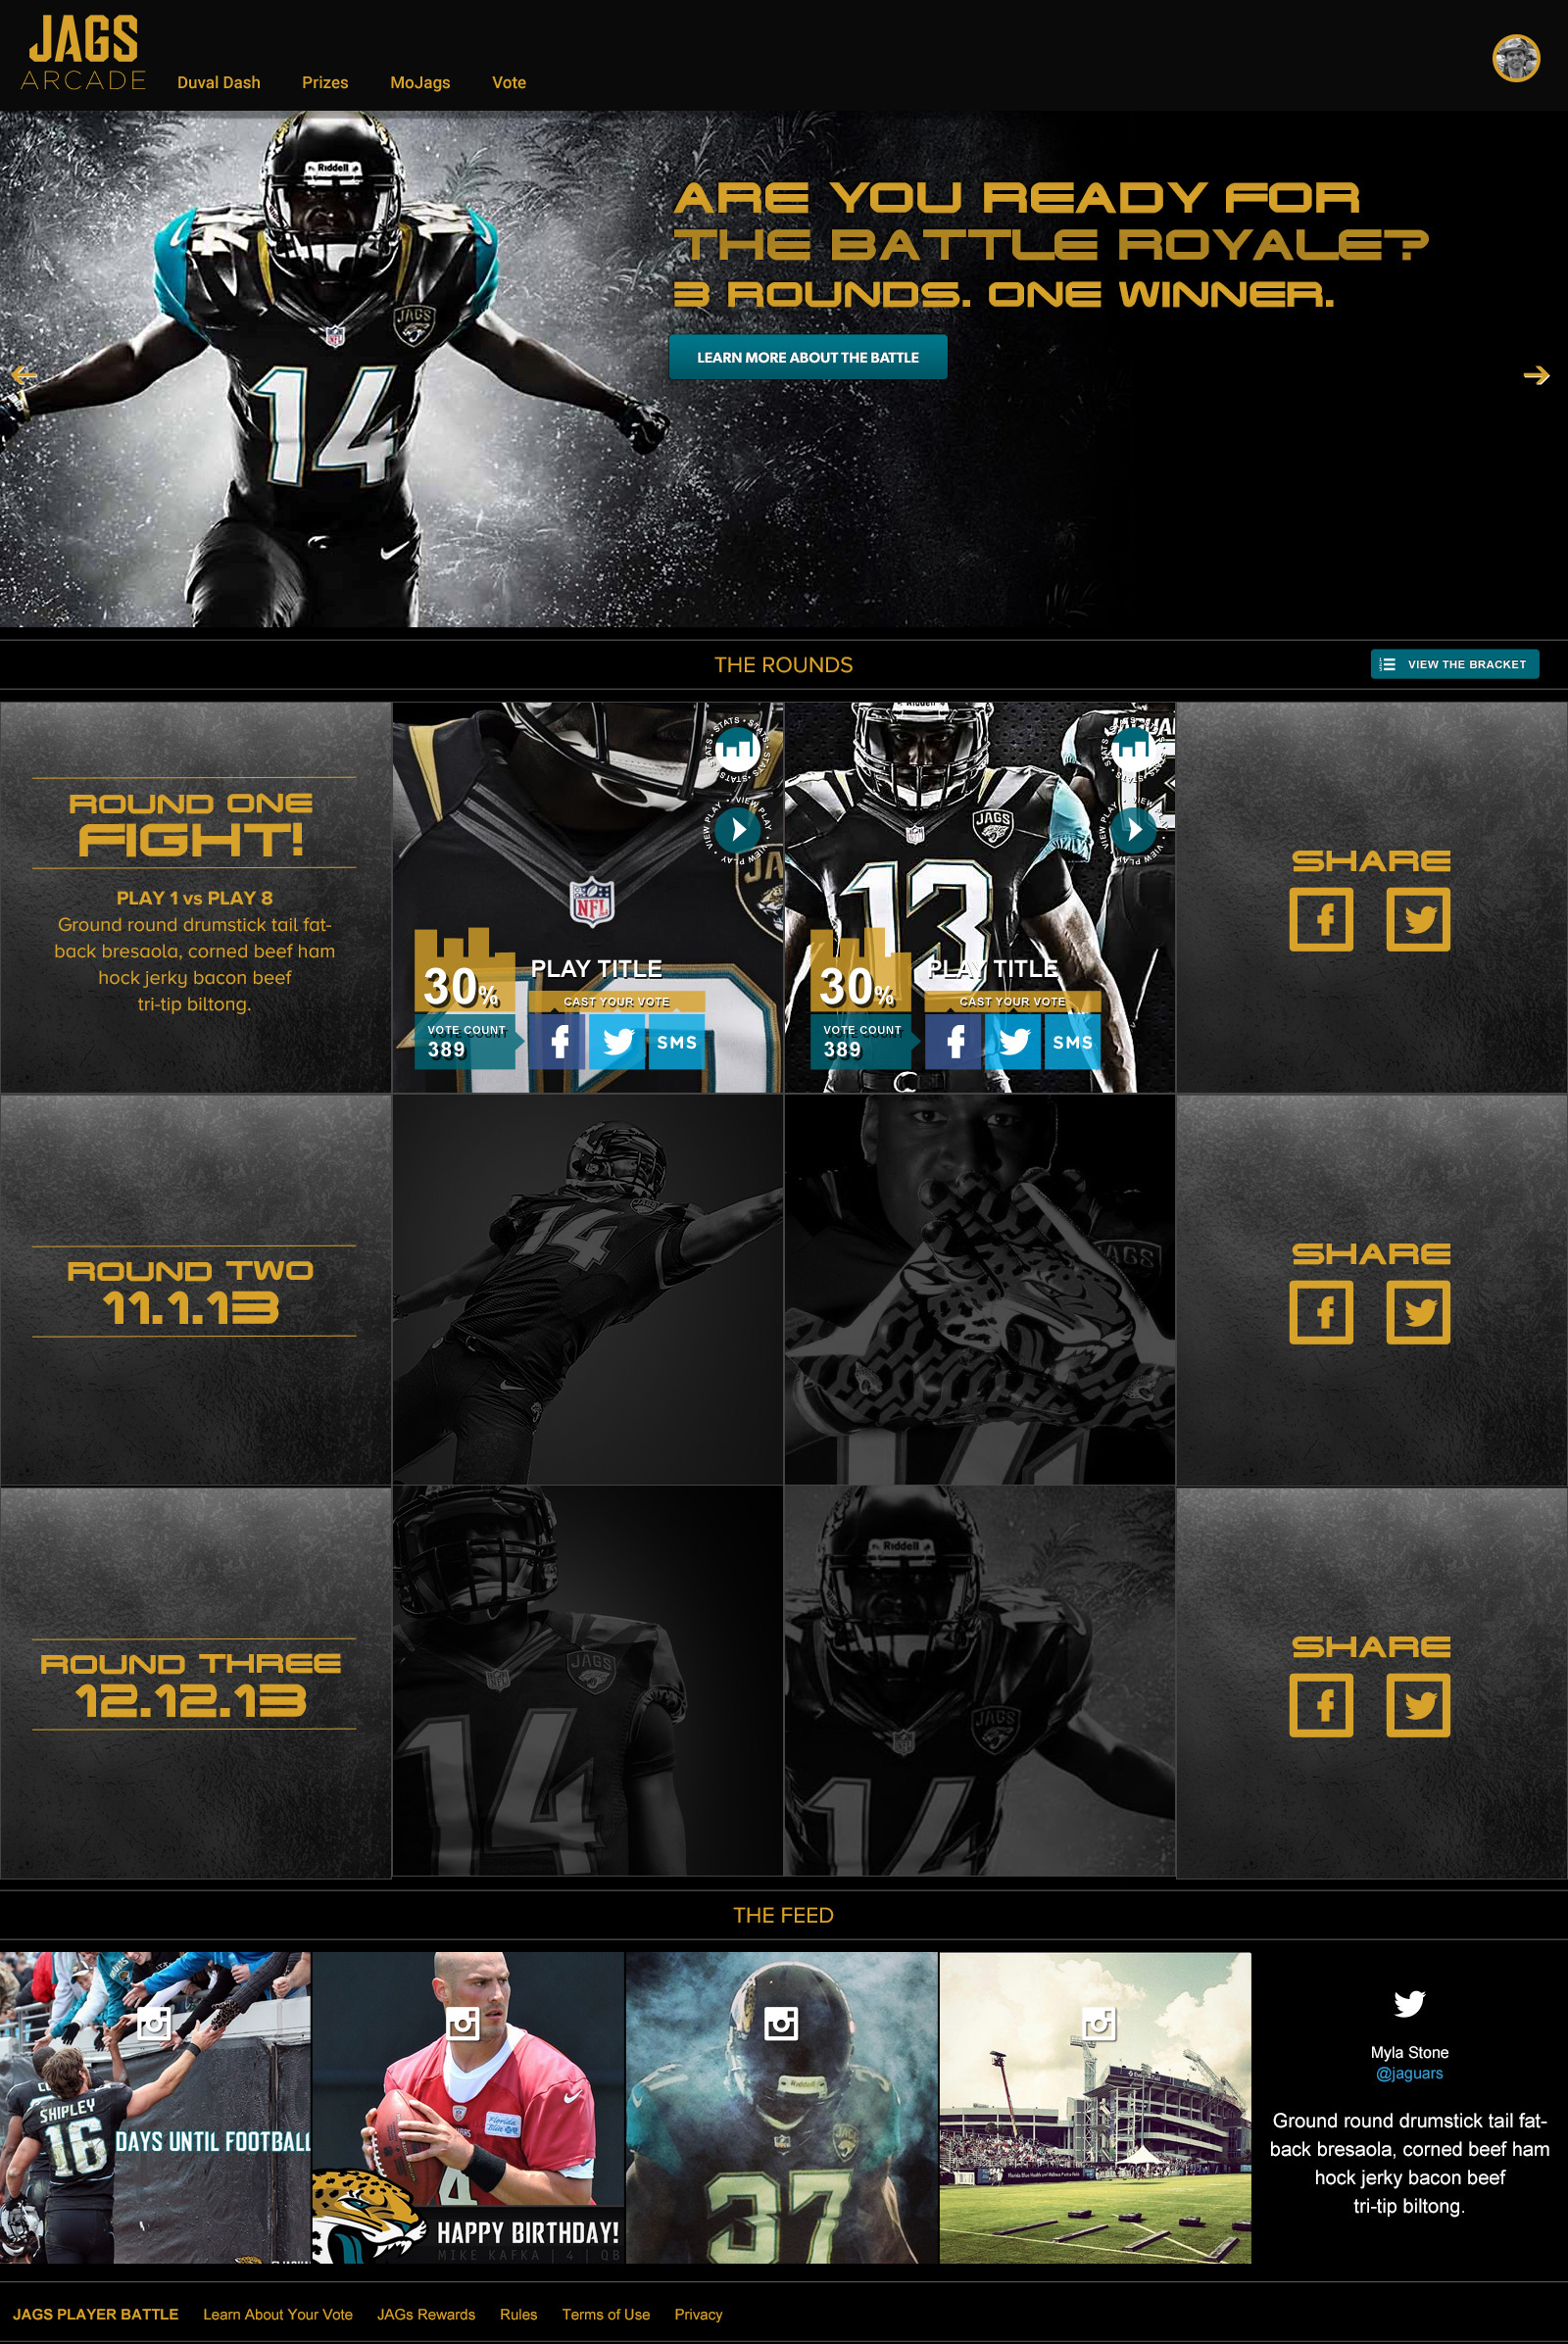 JAGS_Voting_1a-2